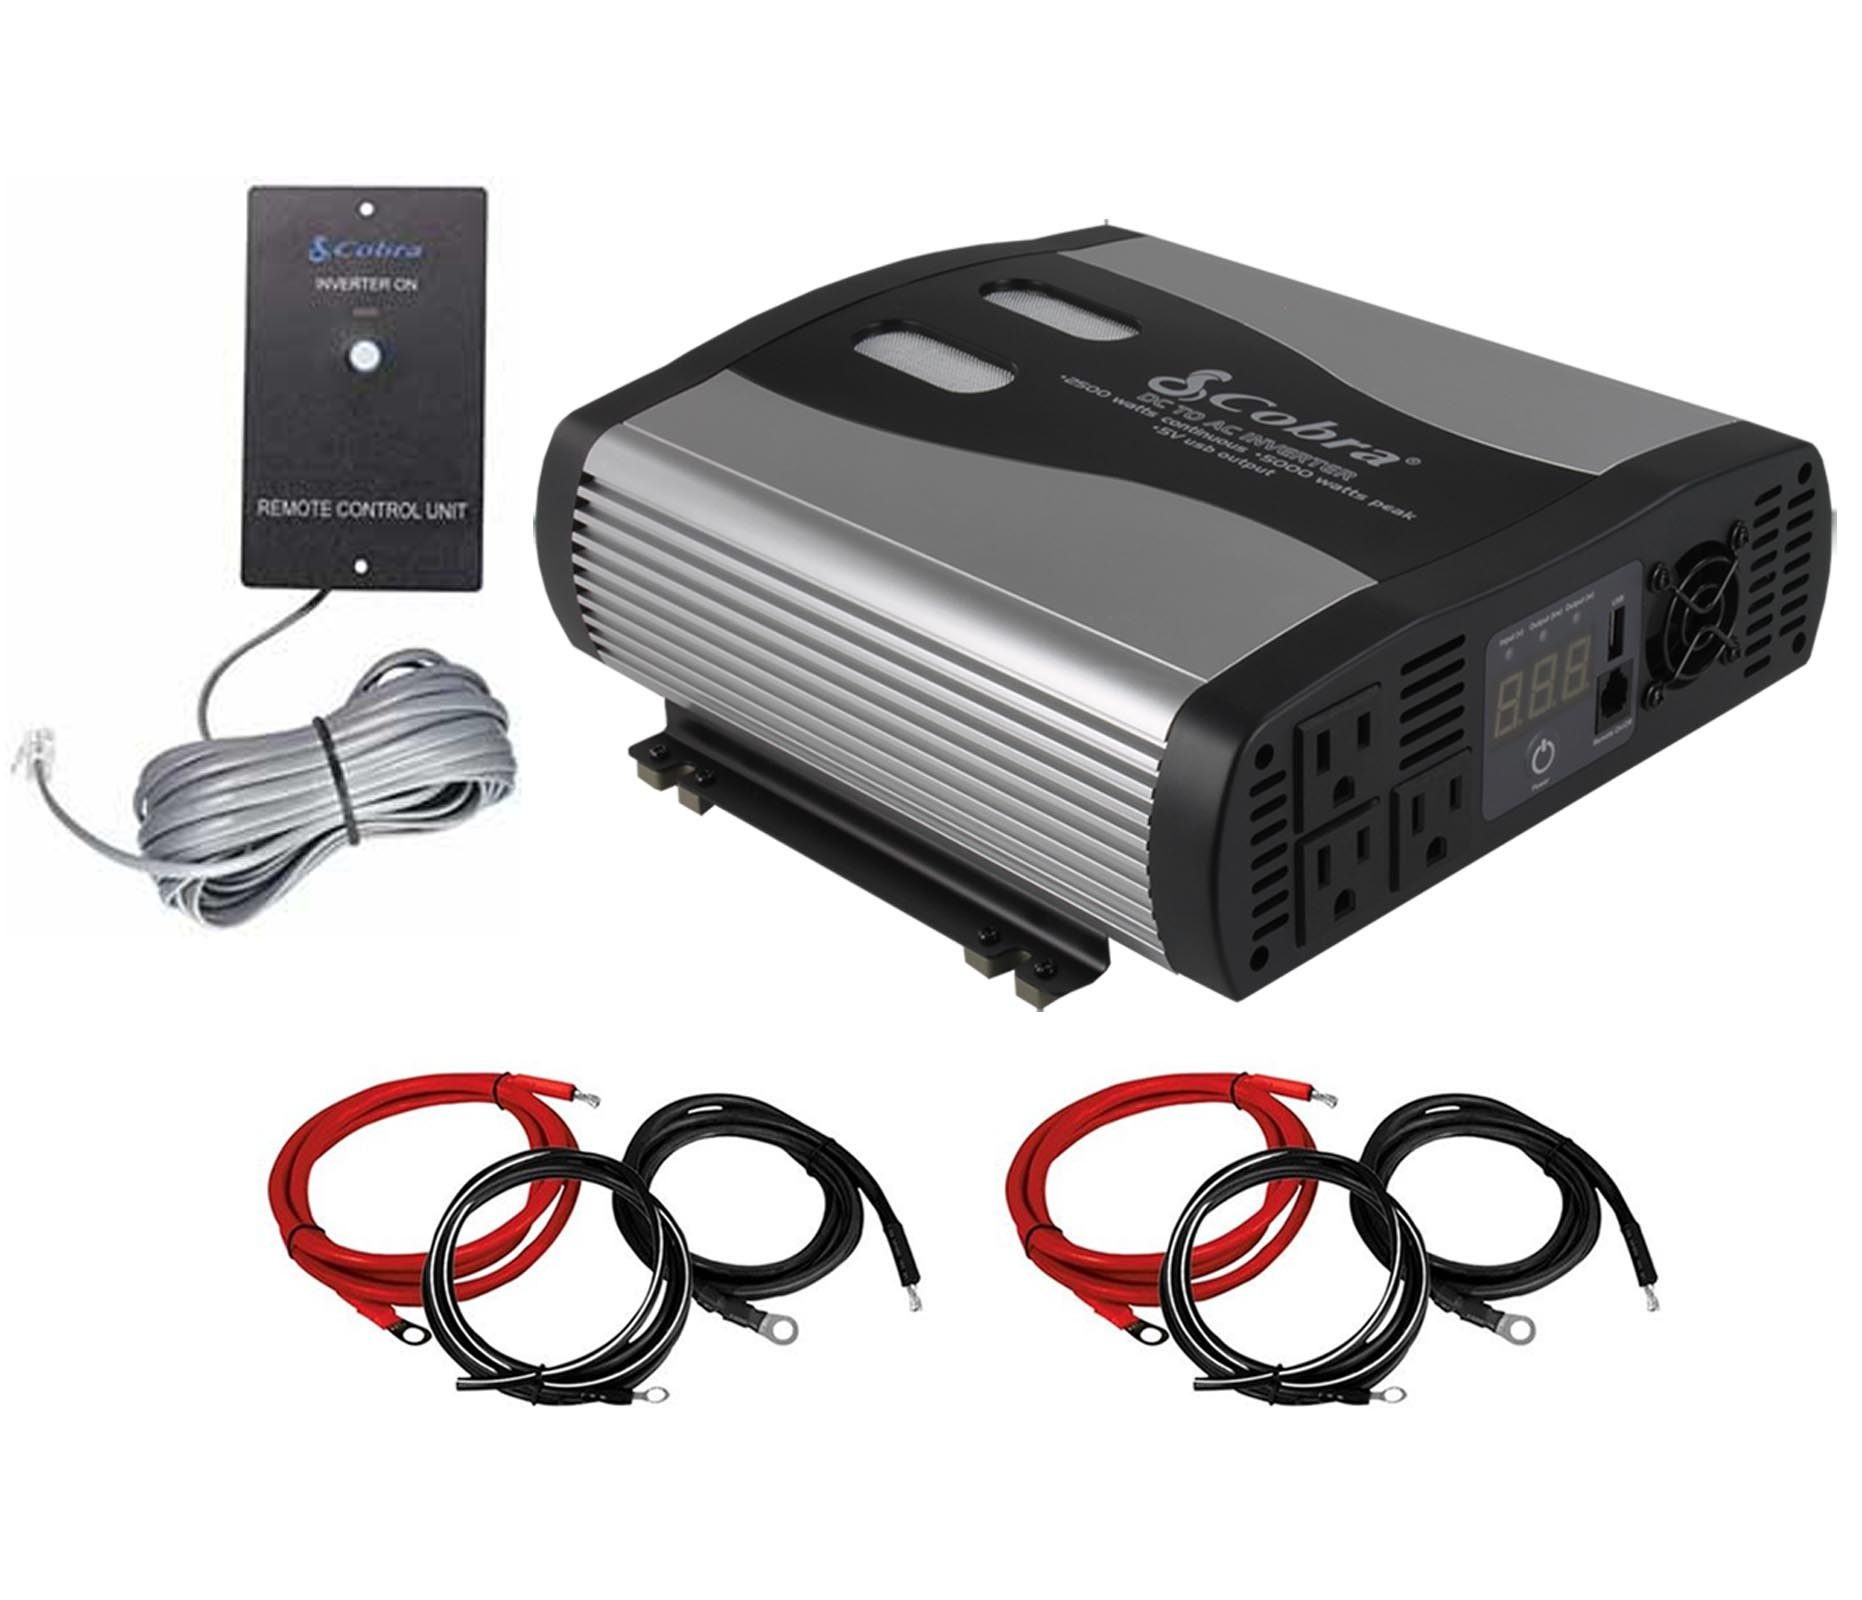 COBRA CPI2575 2500 Watt DC to AC Car Power Inverter + Cable Kits + Remote Switch